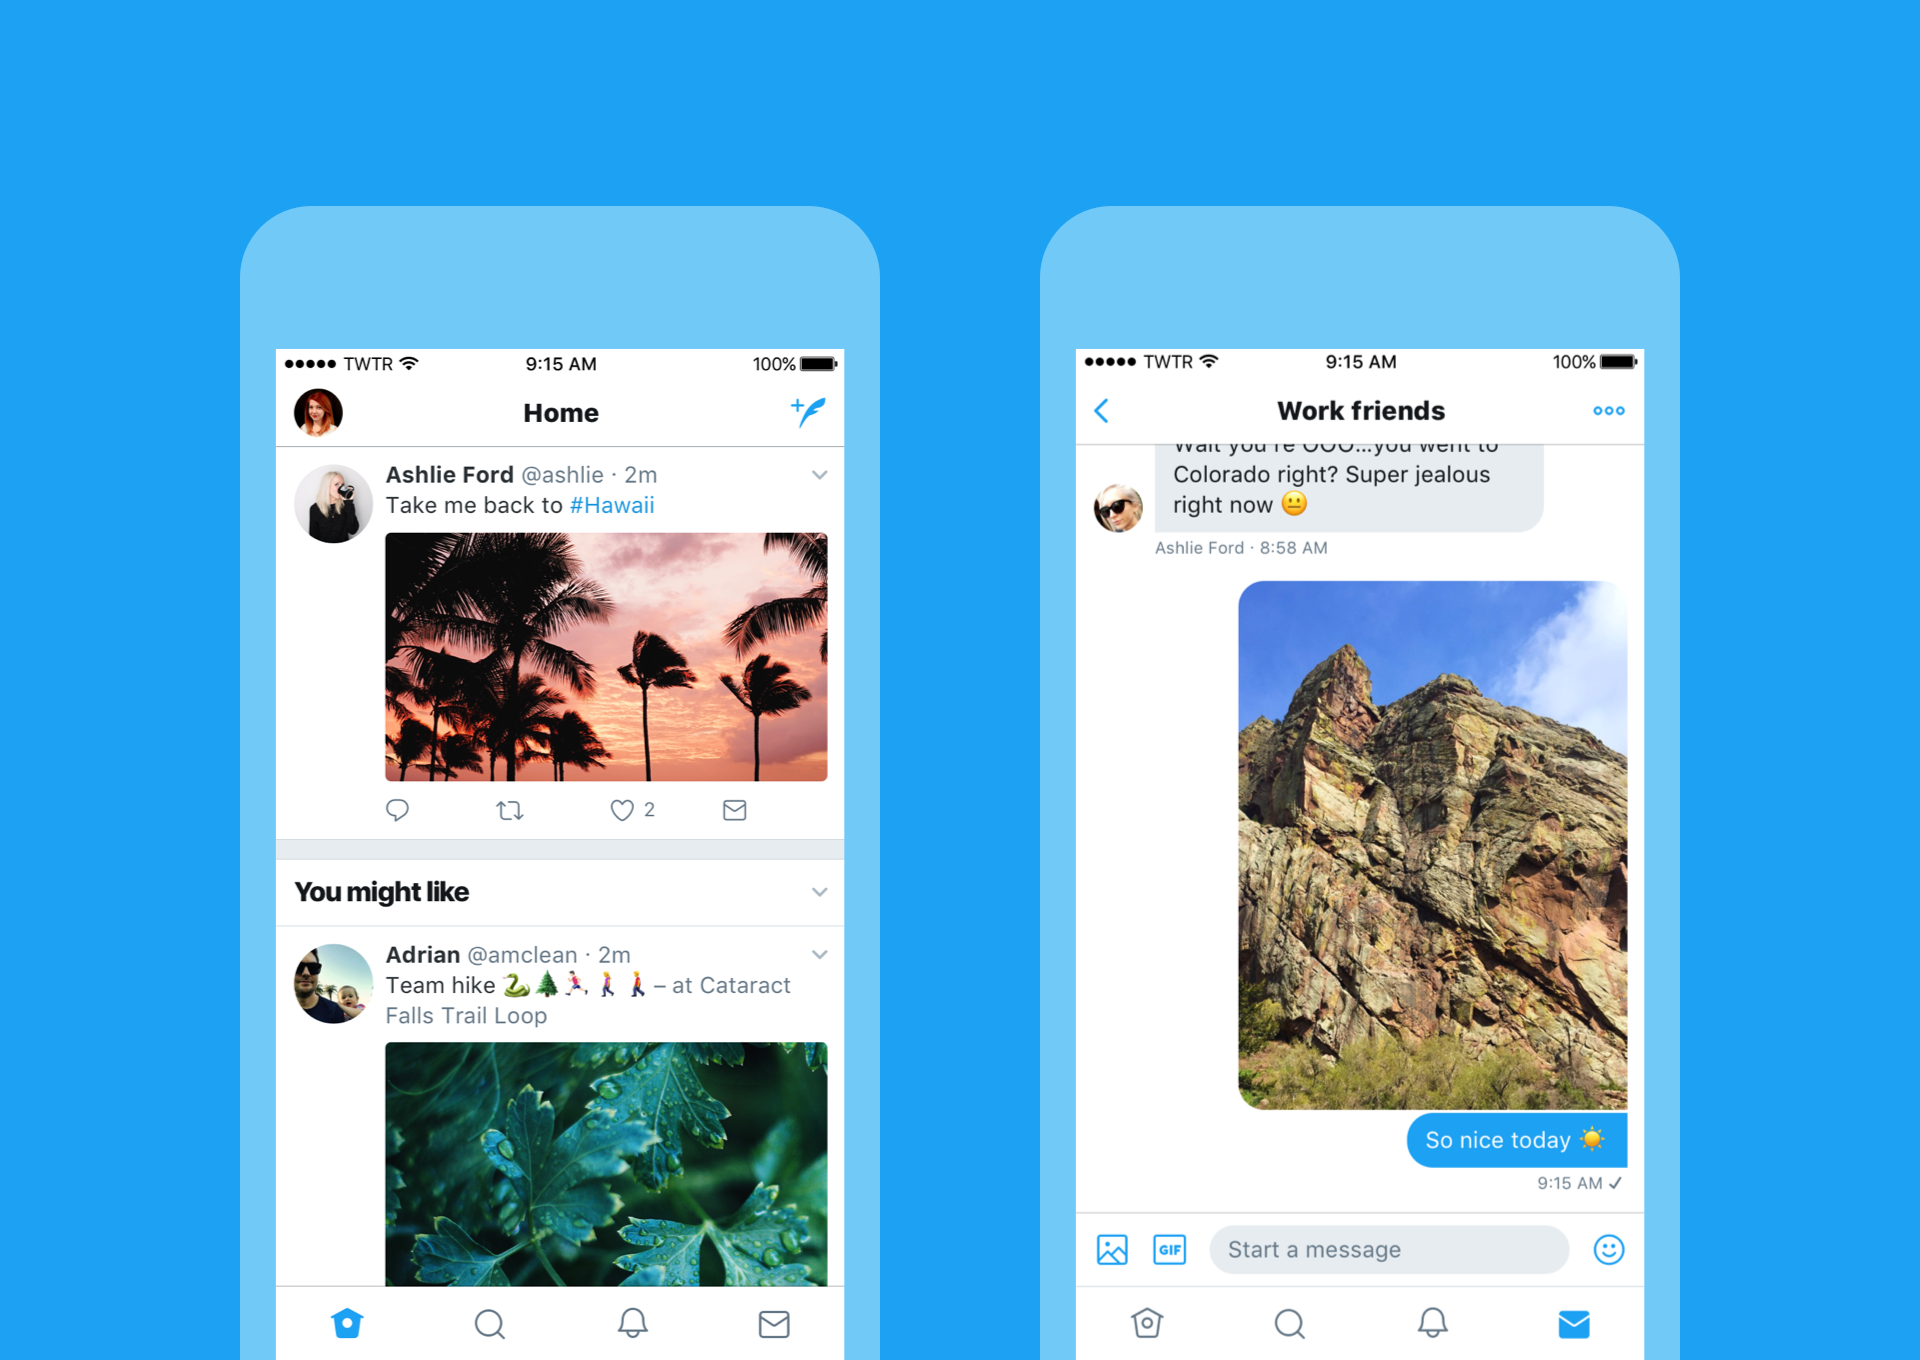 Twitter unveils new design philosophy, streamlines iOS app to resemble Android